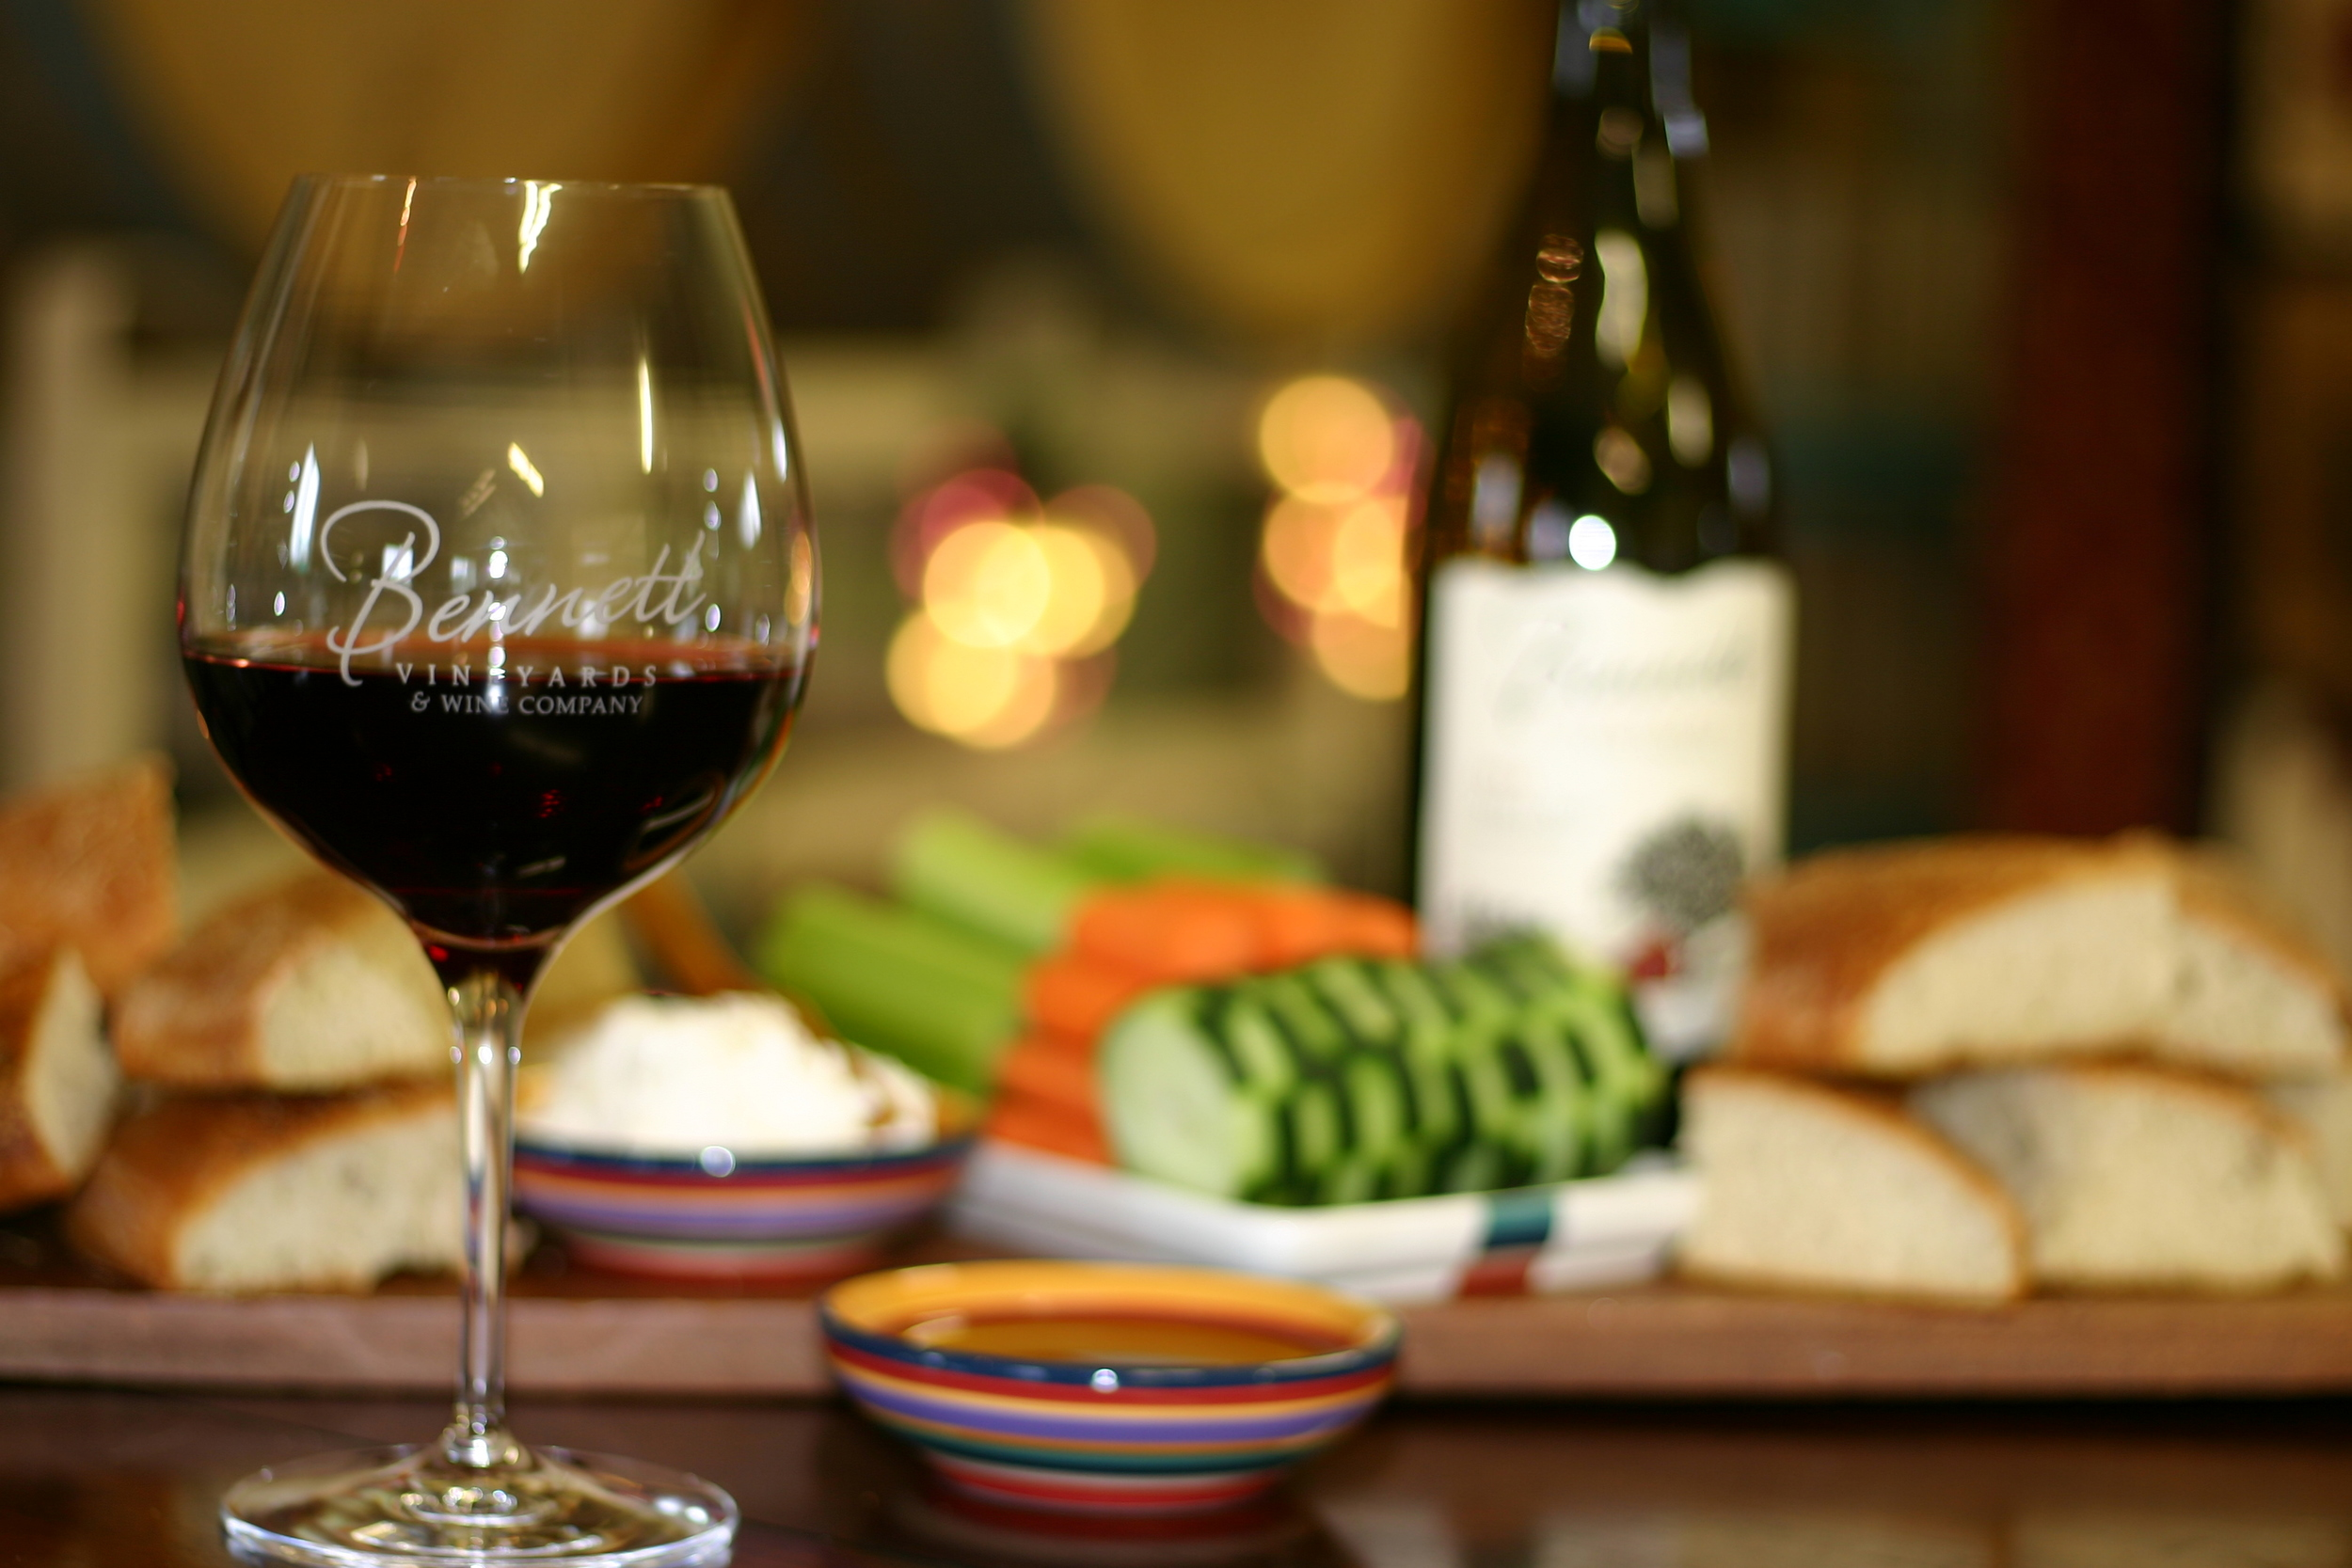 bennett-vineyards-glass-food.JPG